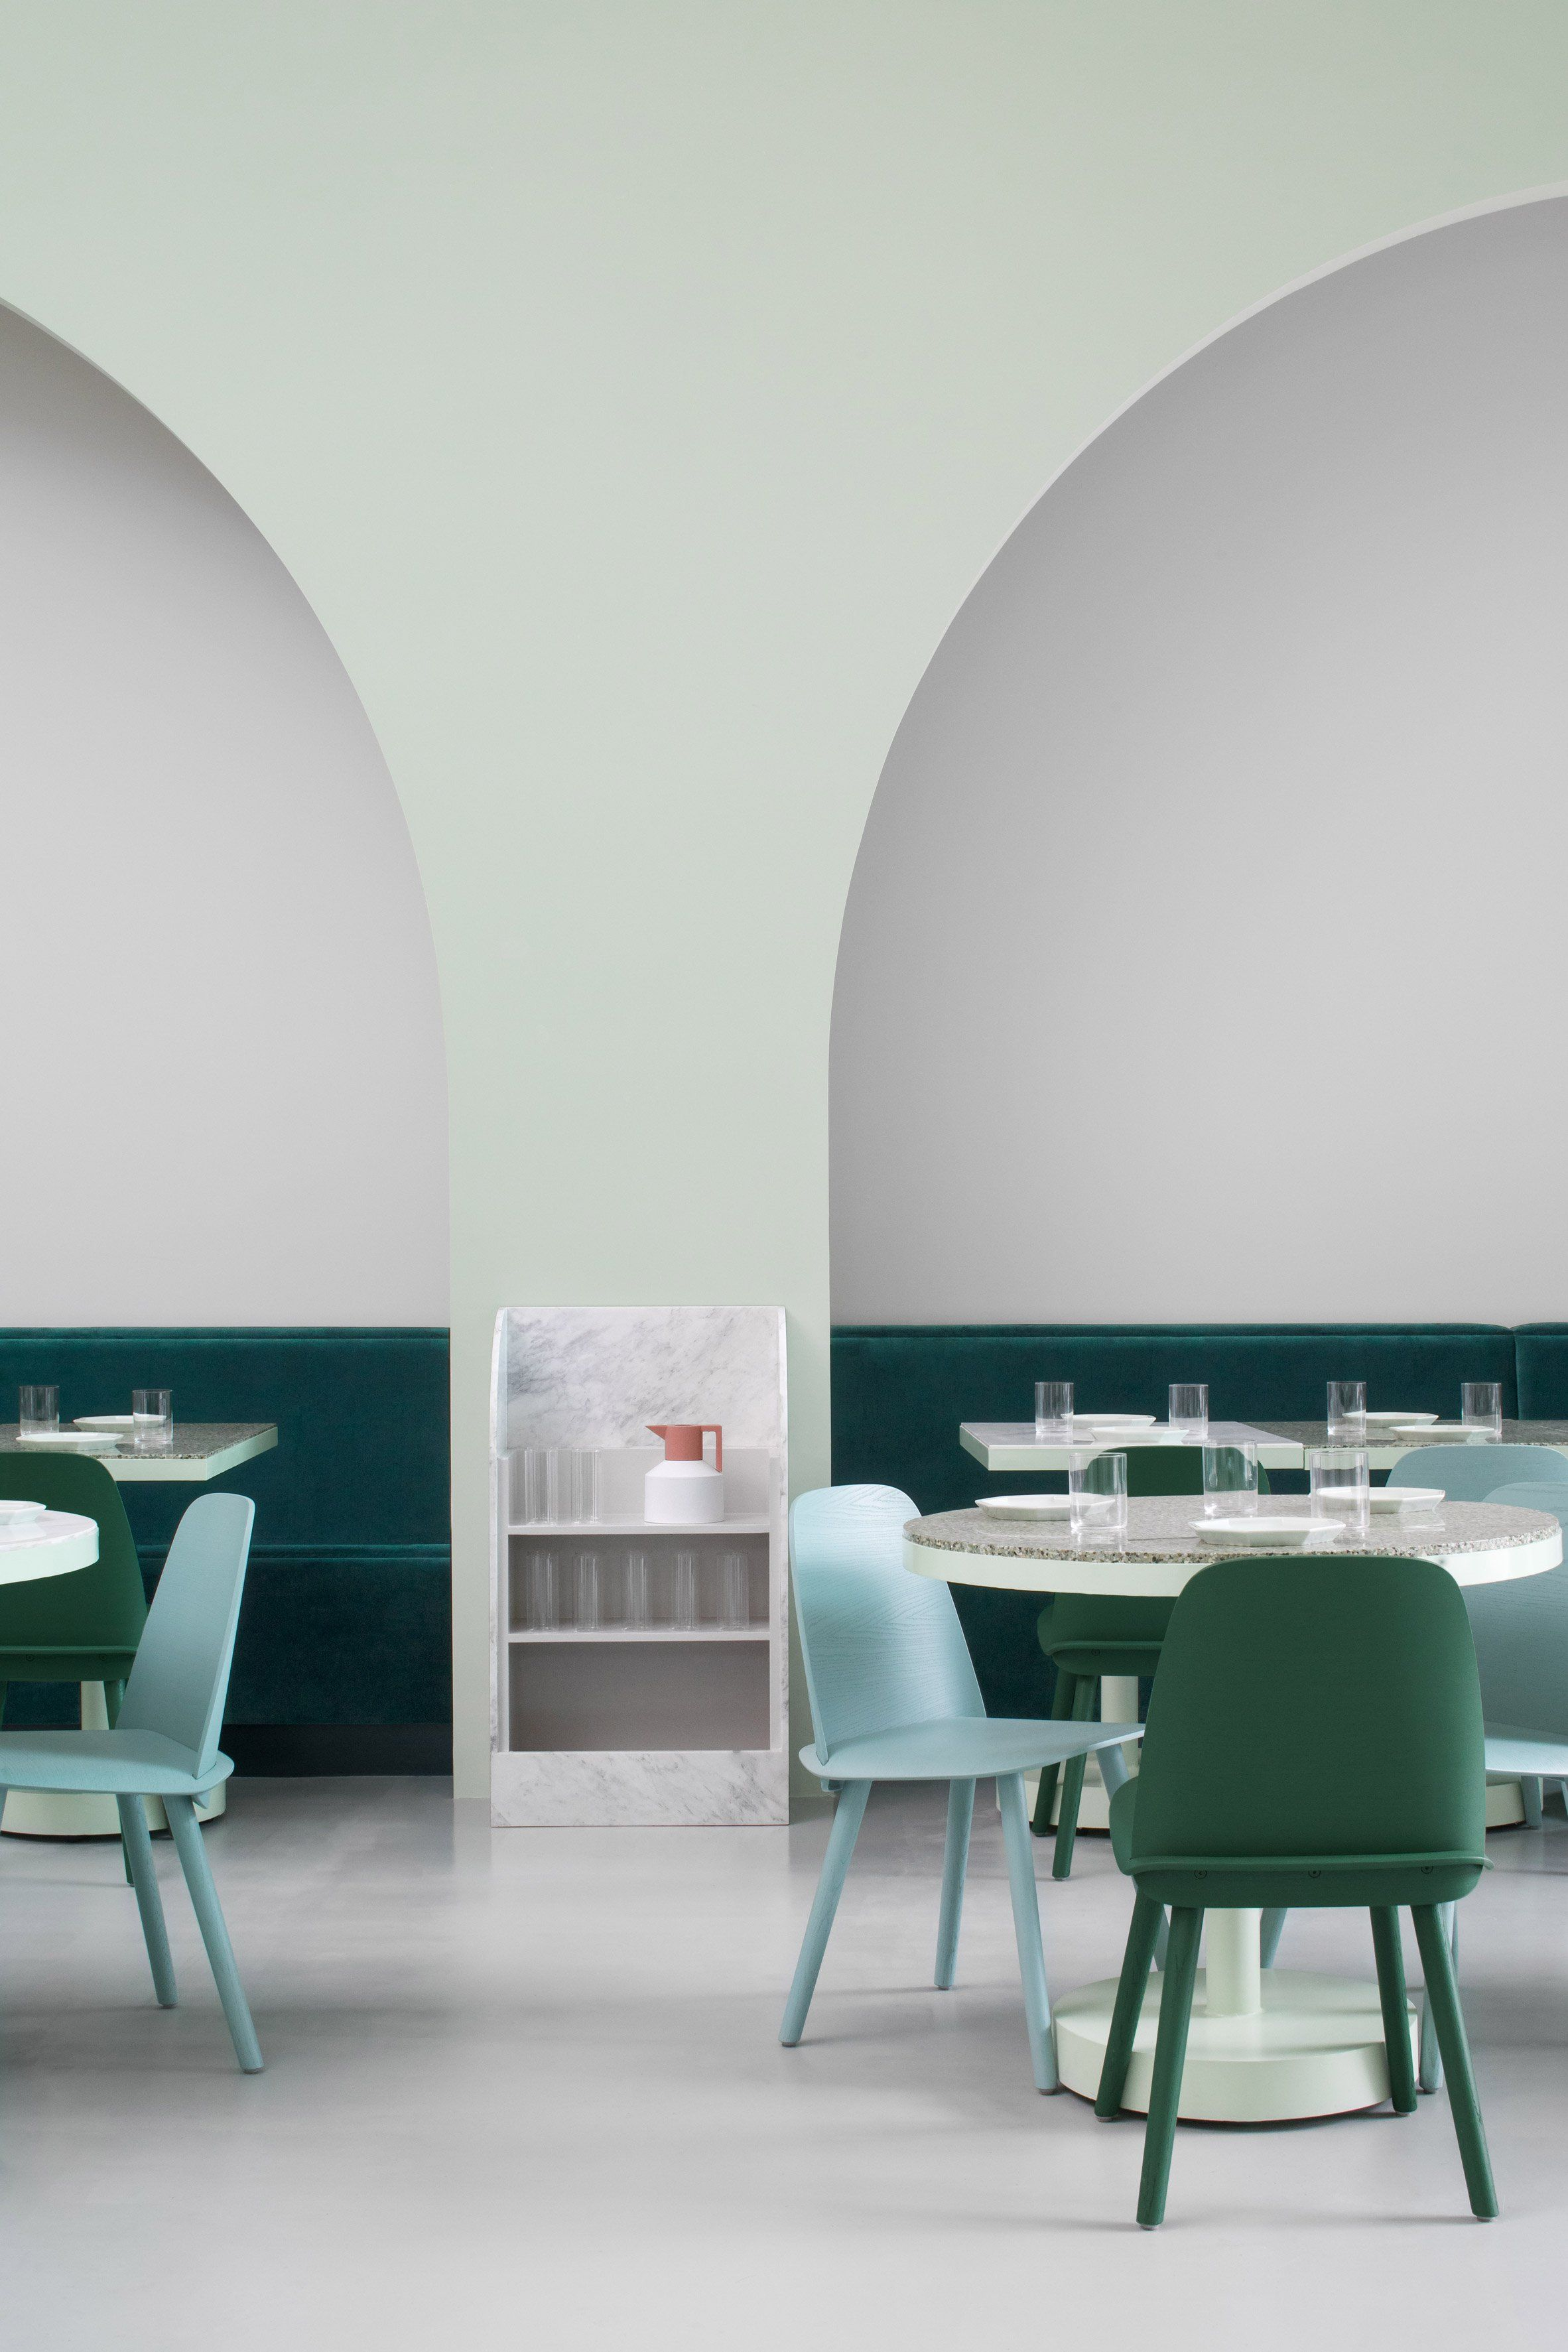 chengdu cafe features interiors inspired by wes anderson movie - Marble Cafe Decoration